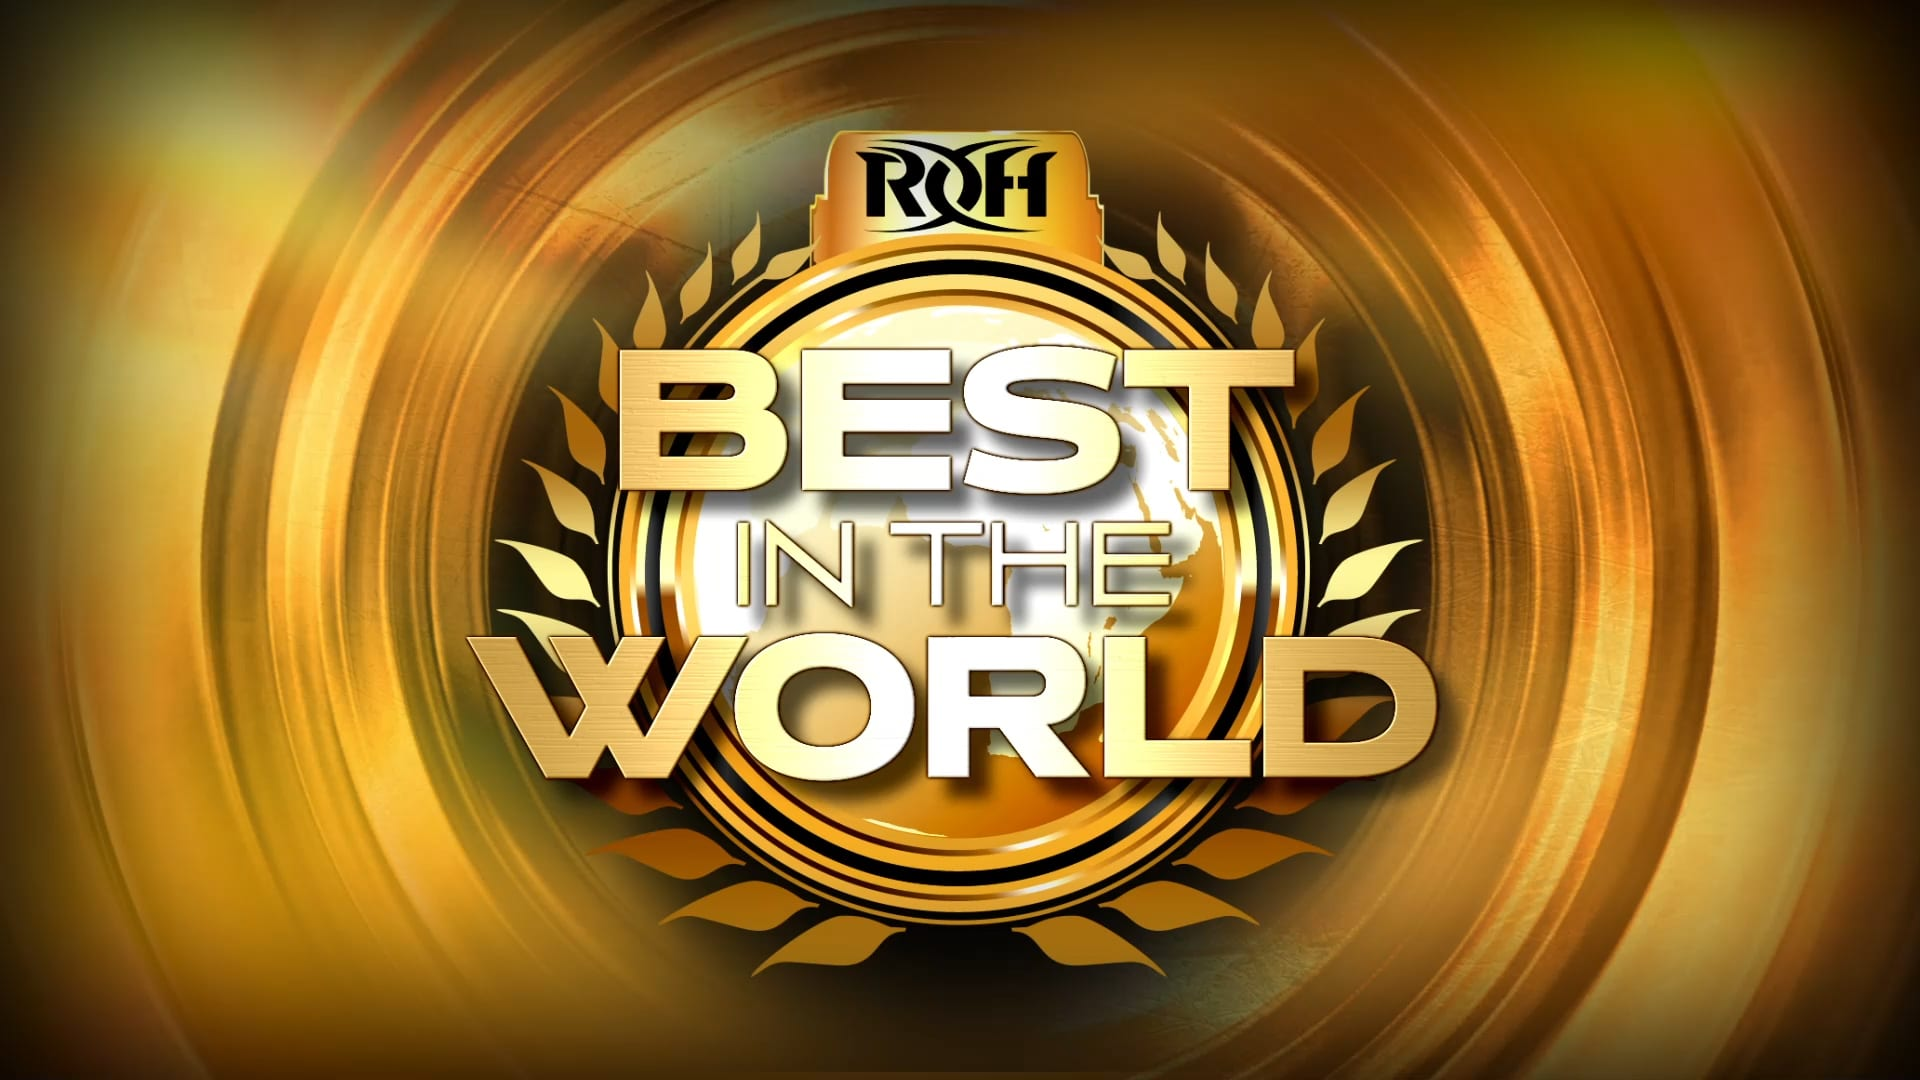 ROH Announces Best In The World PPV To Have Live Crowd